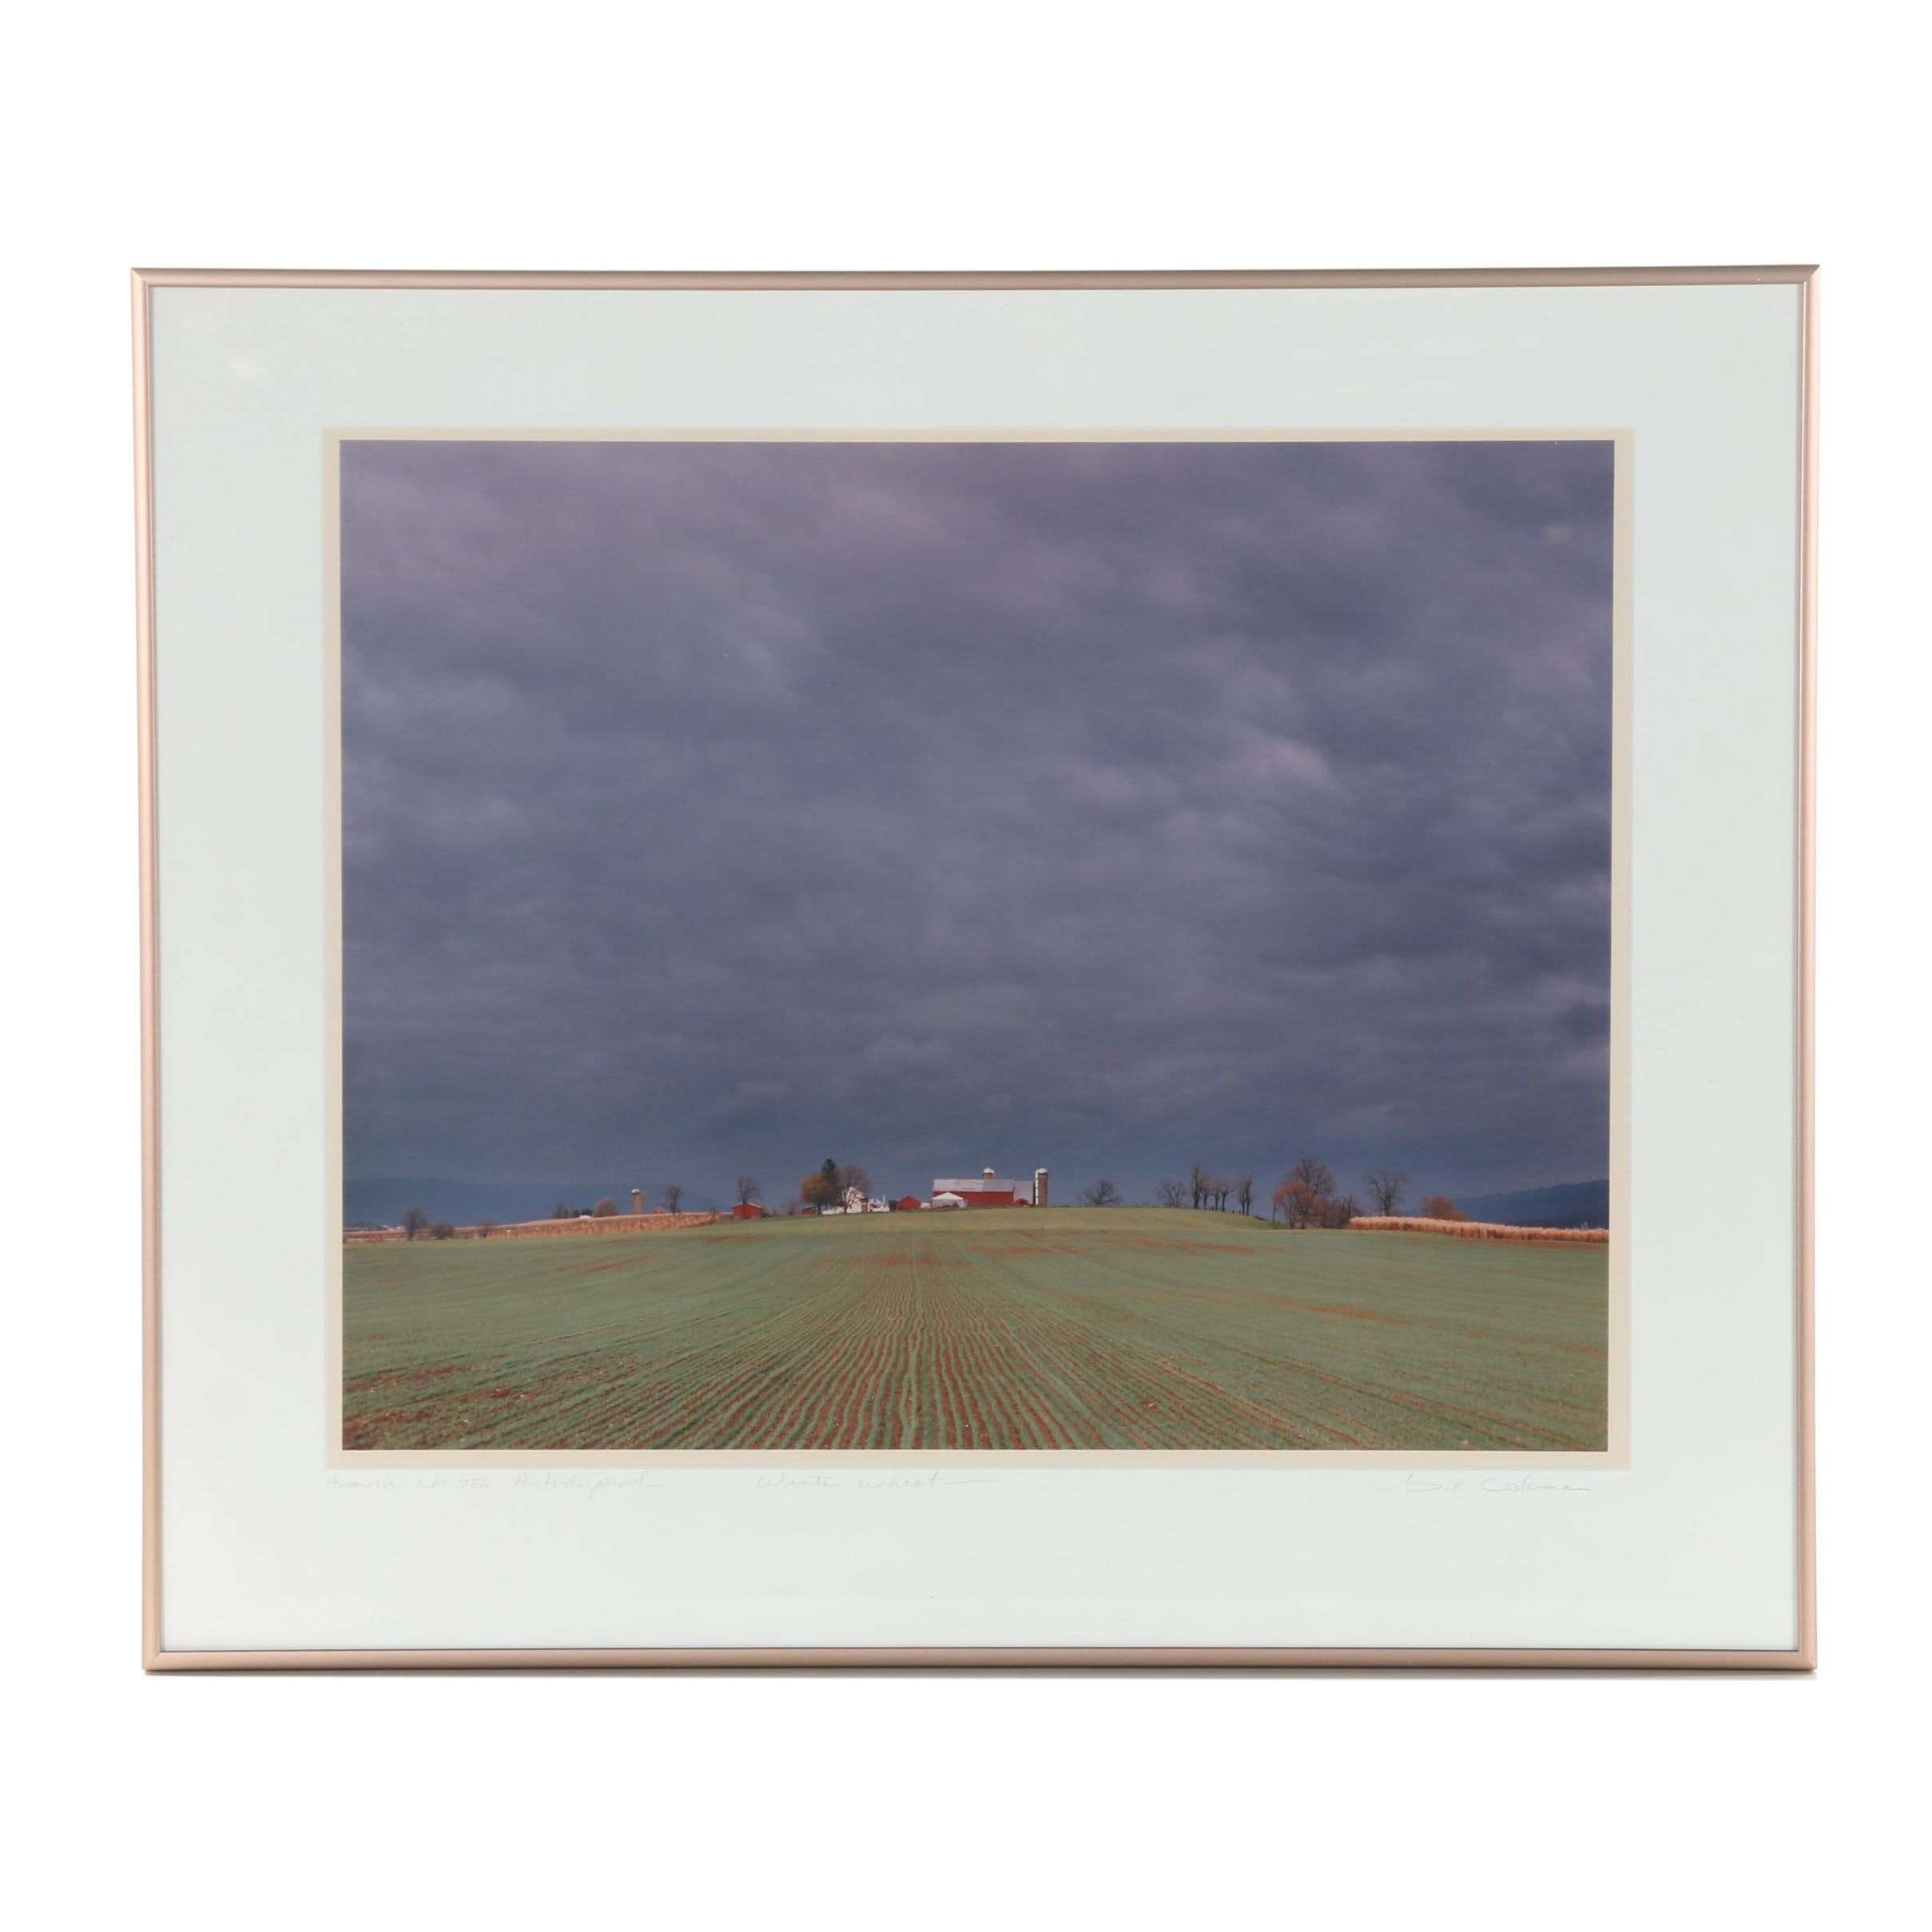 "Bill Coleman Photograph ""Winter Wheat"""